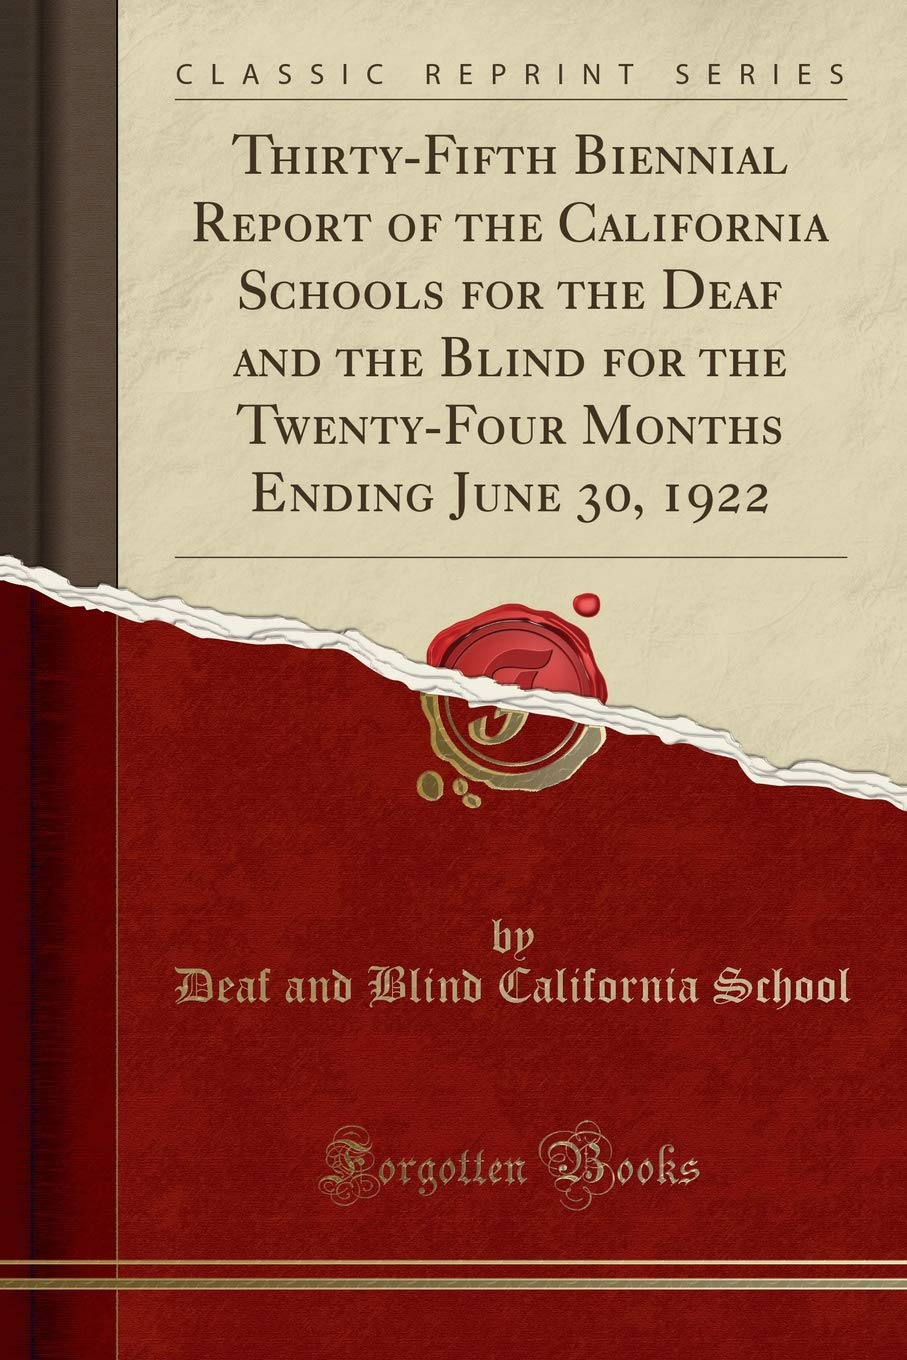 Thirty-Fifth Biennial Report of the California Schools for